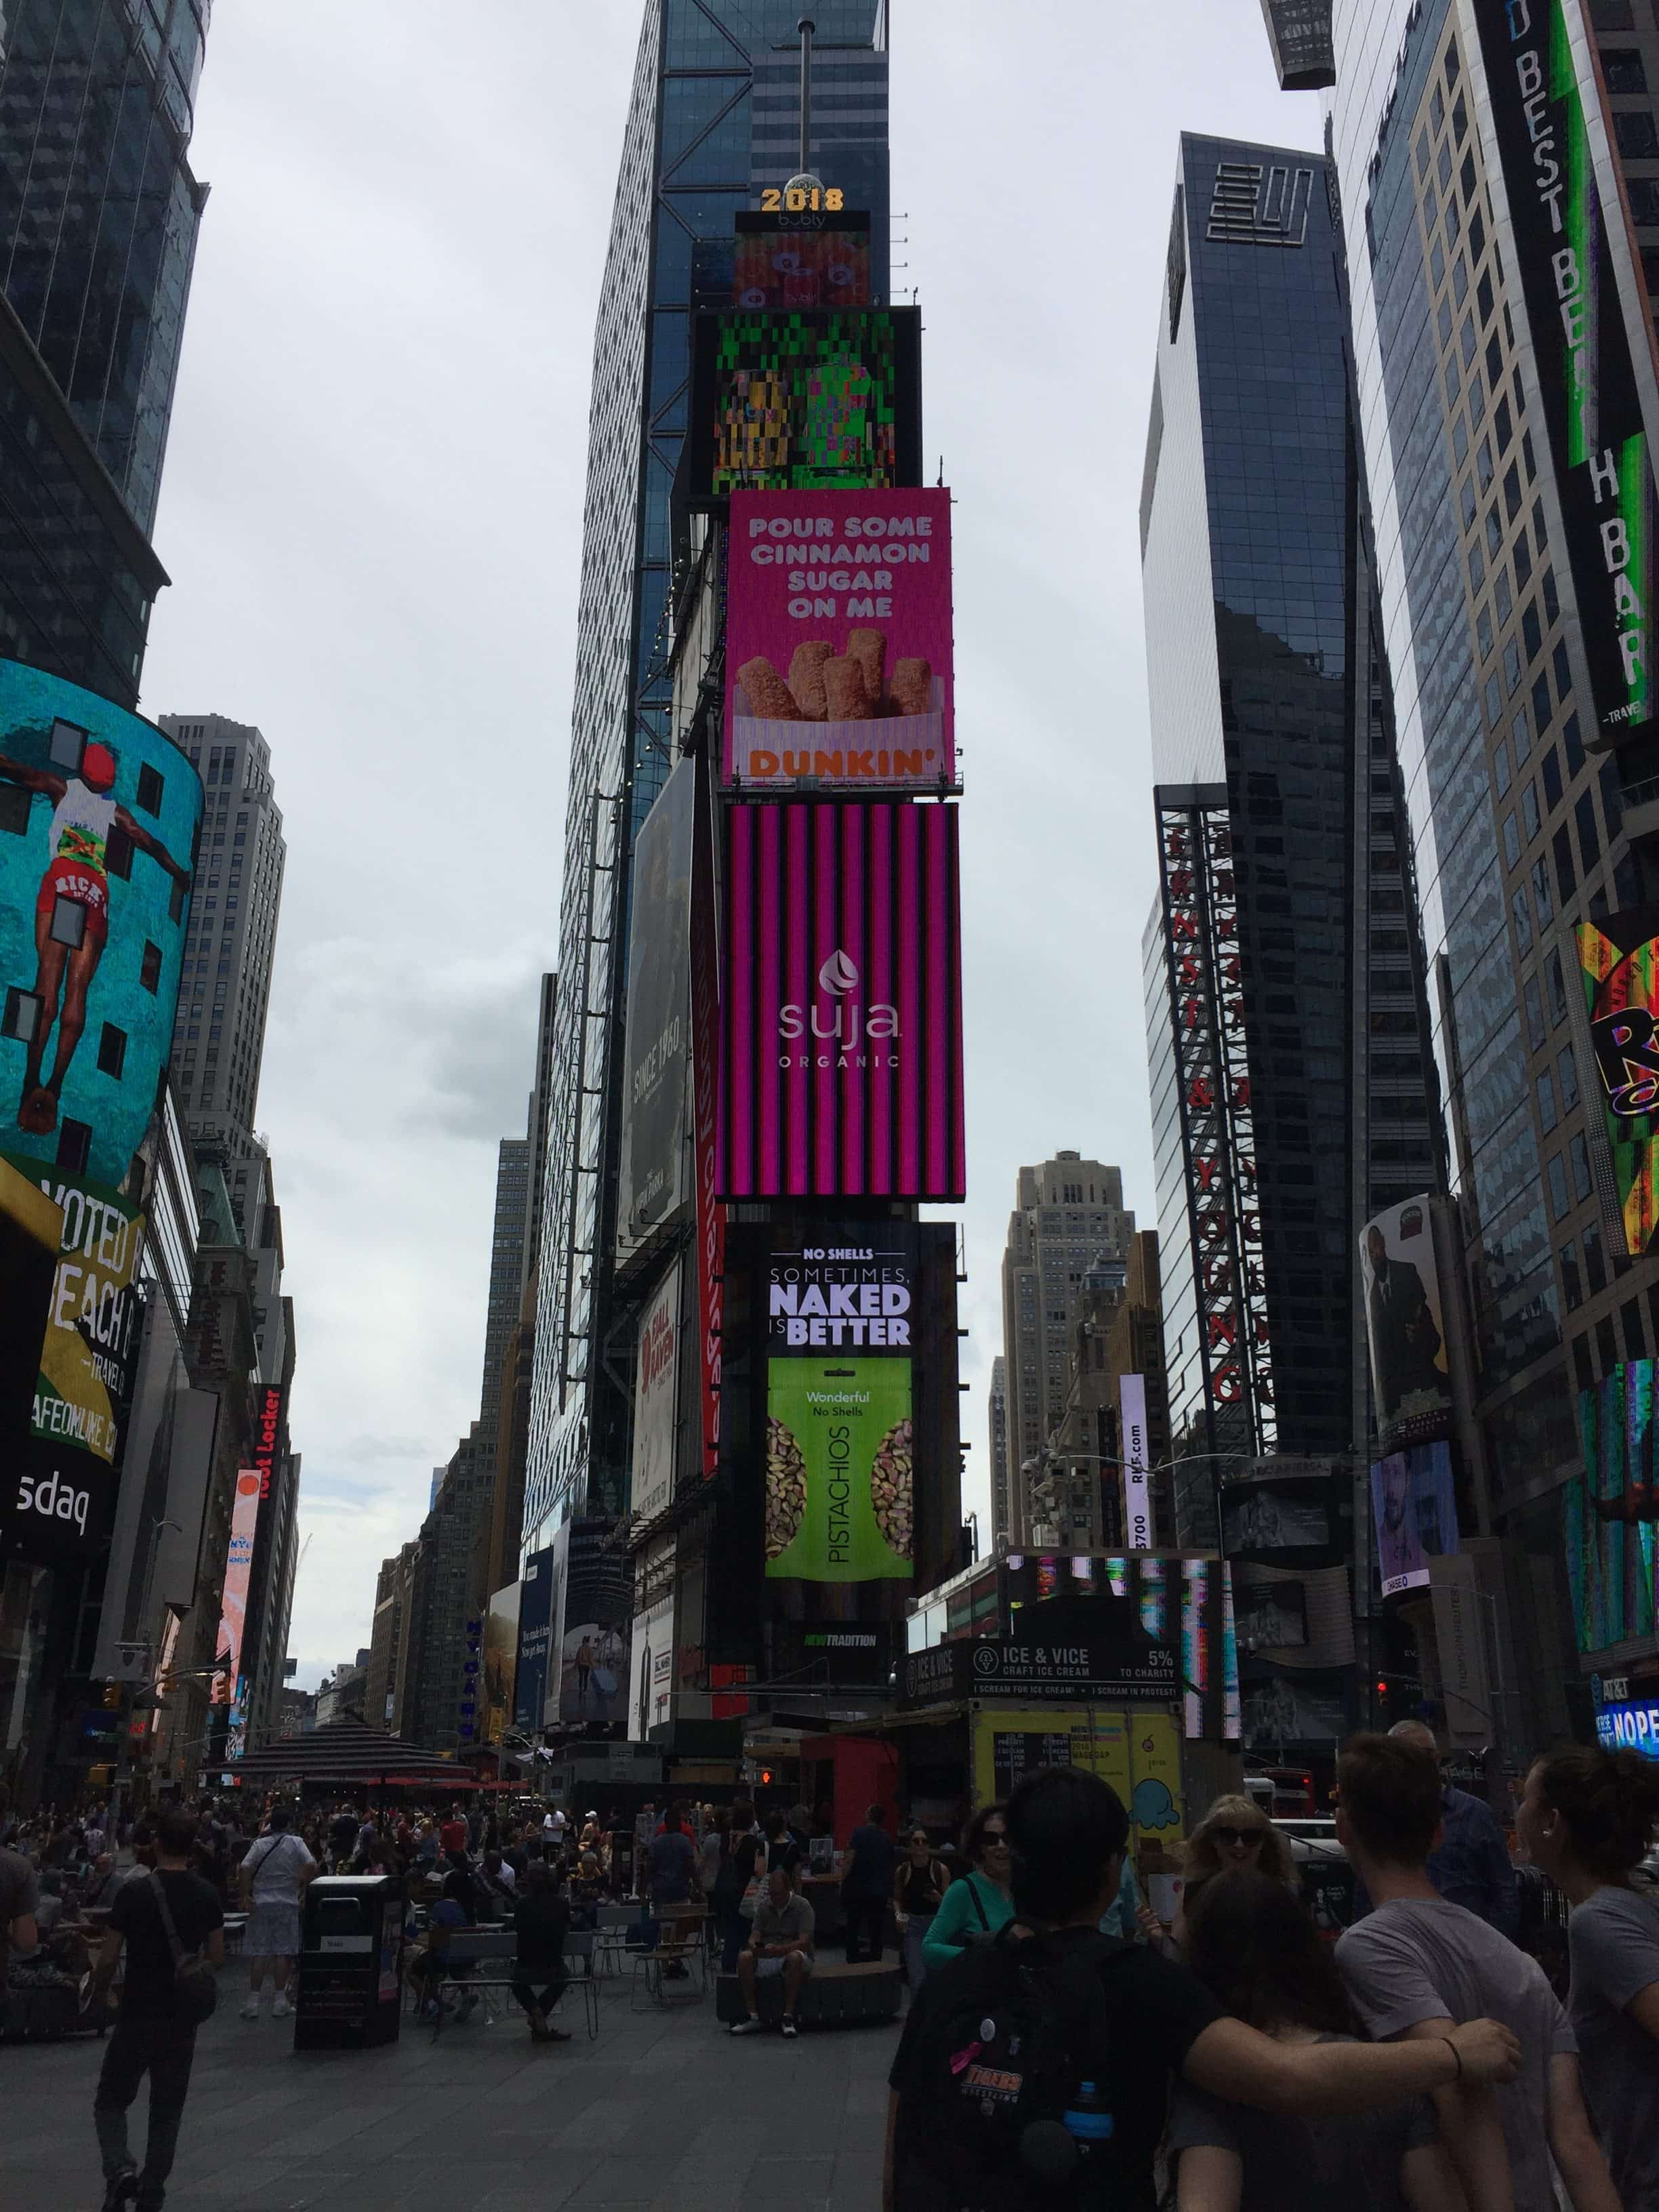 Times Square: get naked